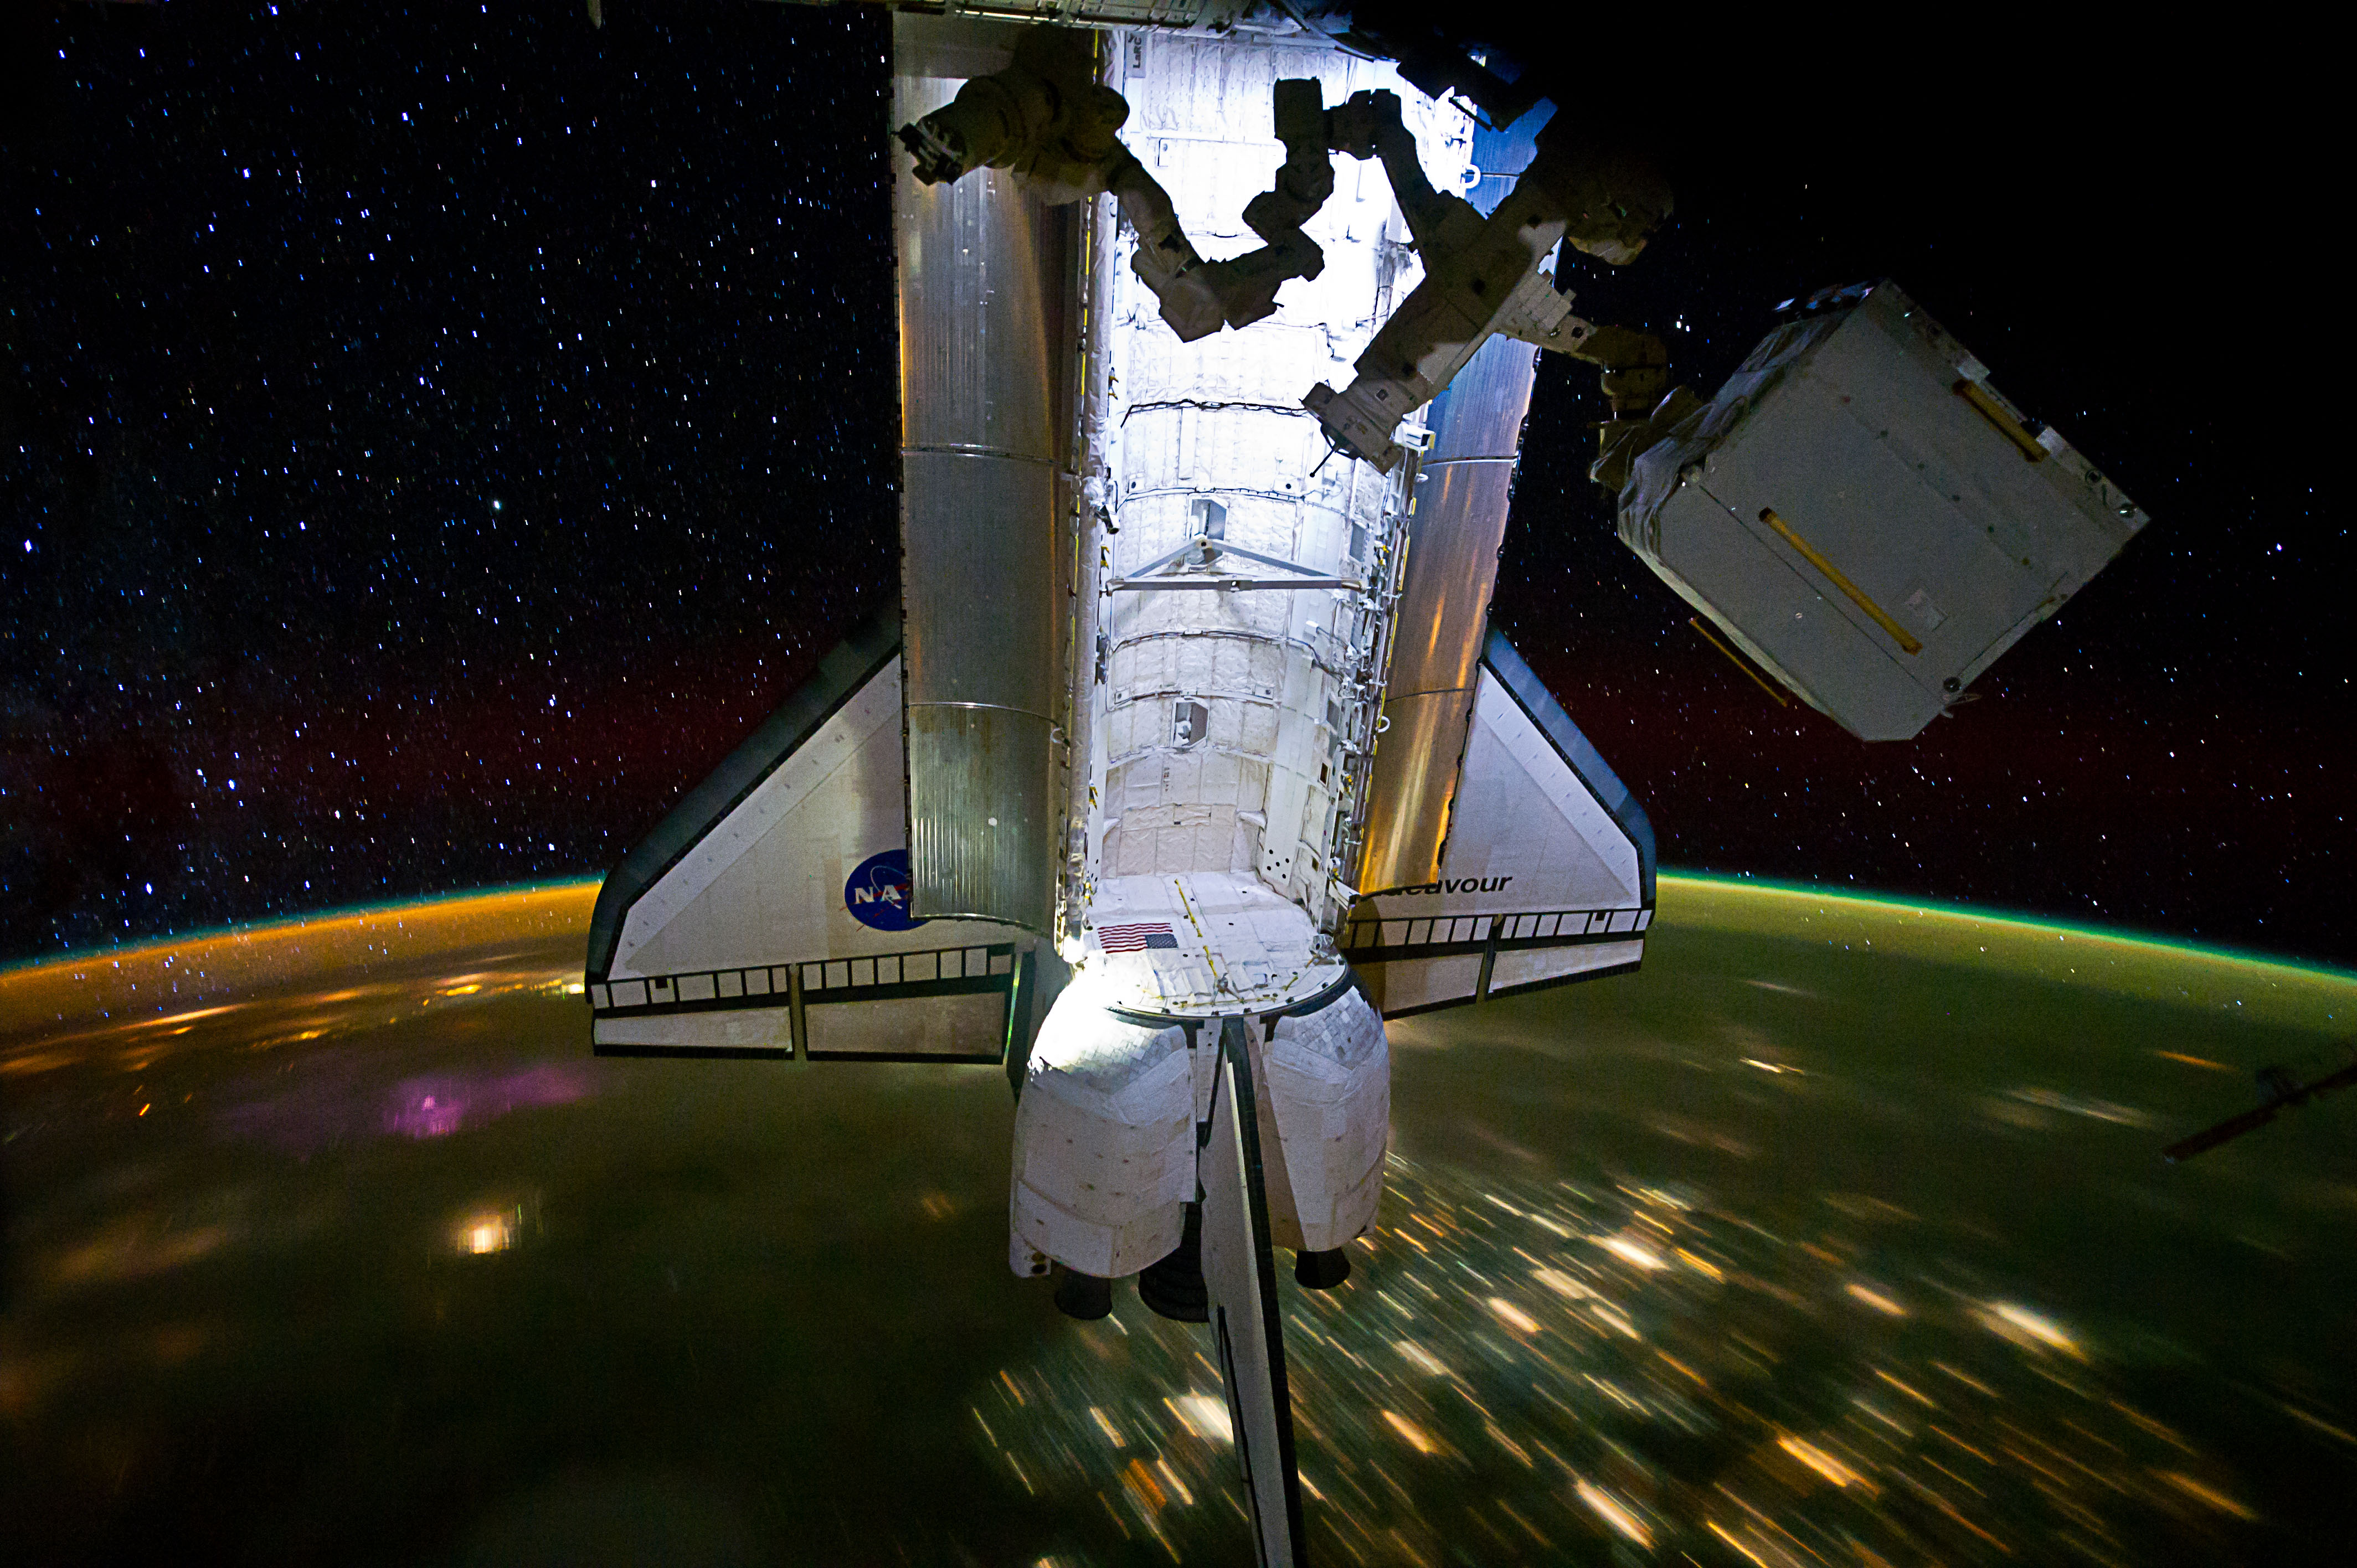 space shuttle endeavour in space - photo #15